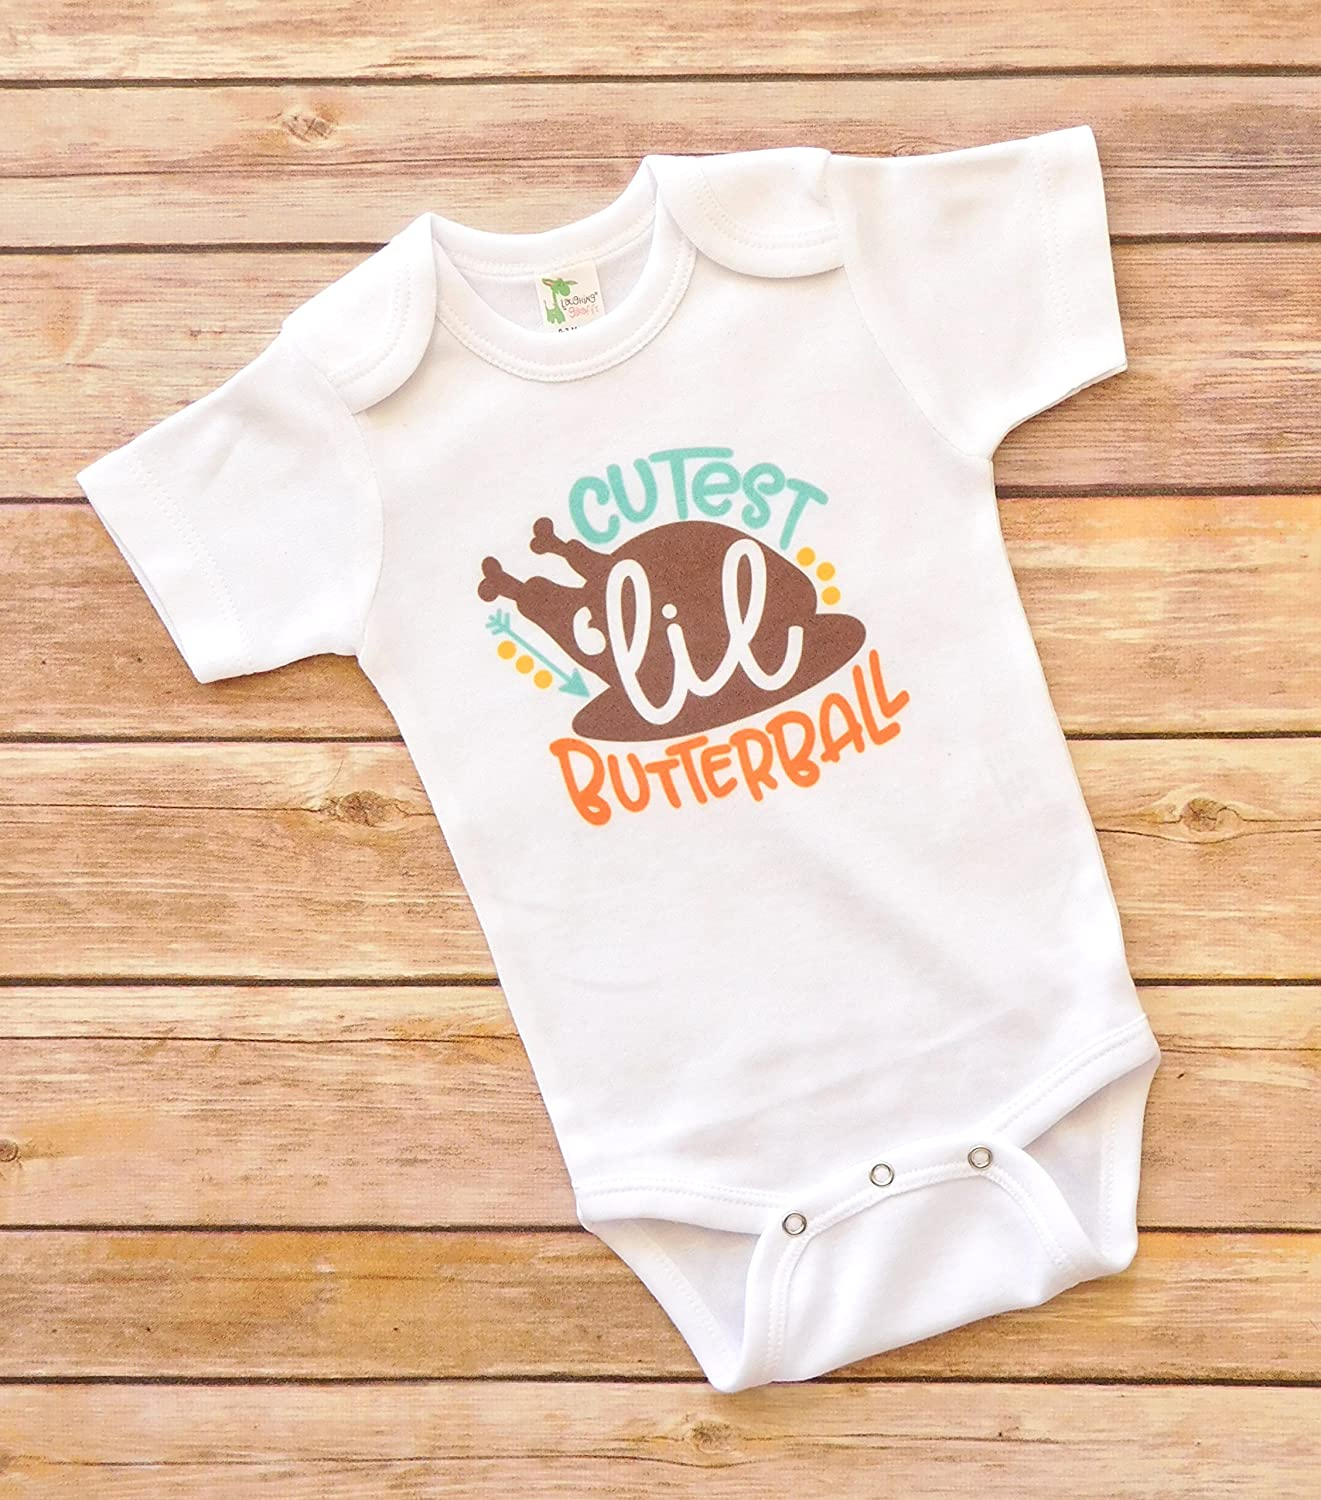 6-12 Months, Thanksgiving Baby Bodysuit - Cutest Butterball - Baby Shower Present